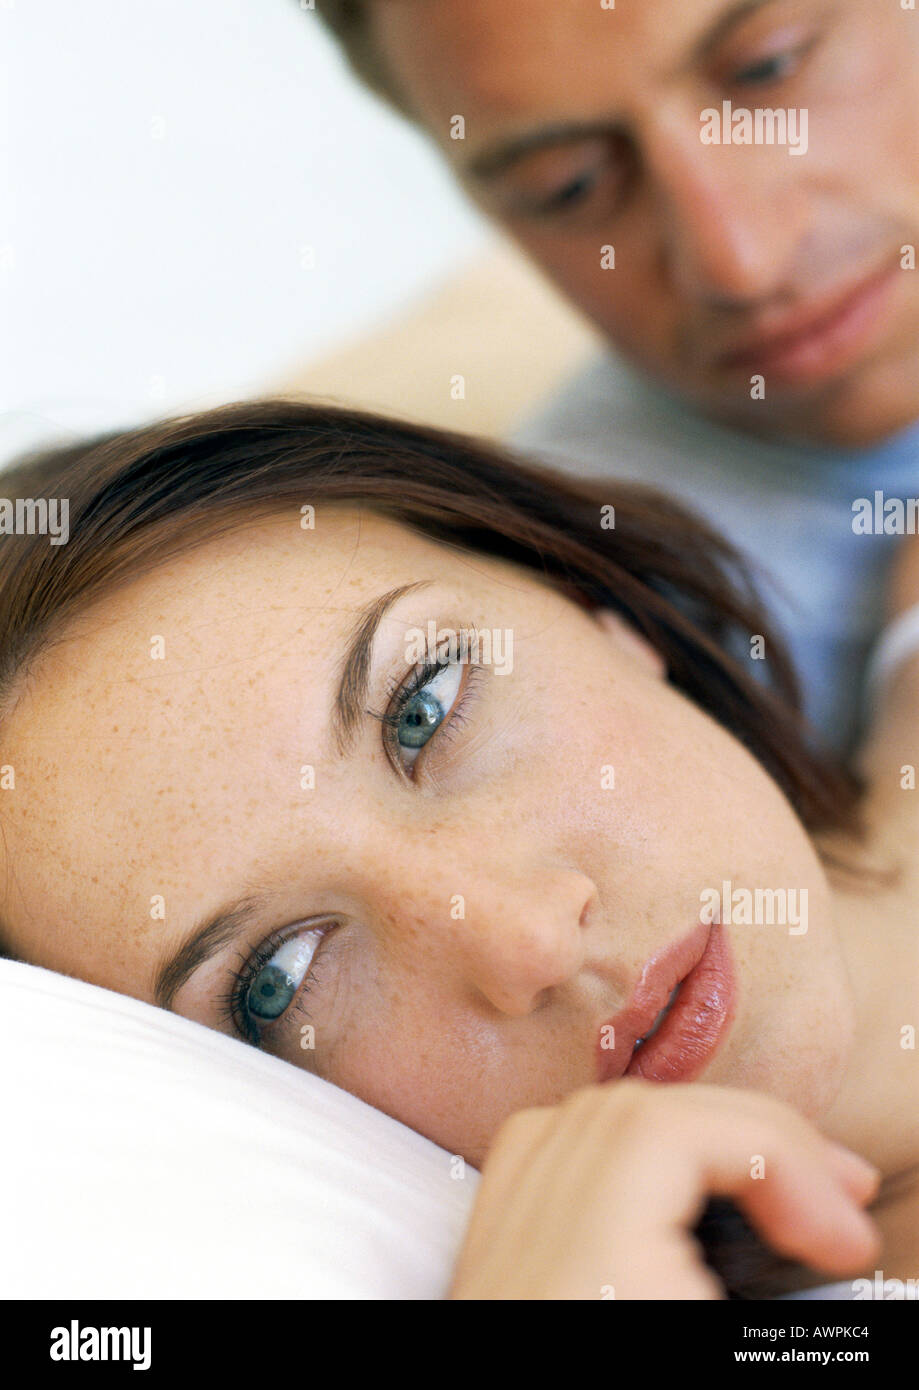 Couple in bed, close-up - Stock Image